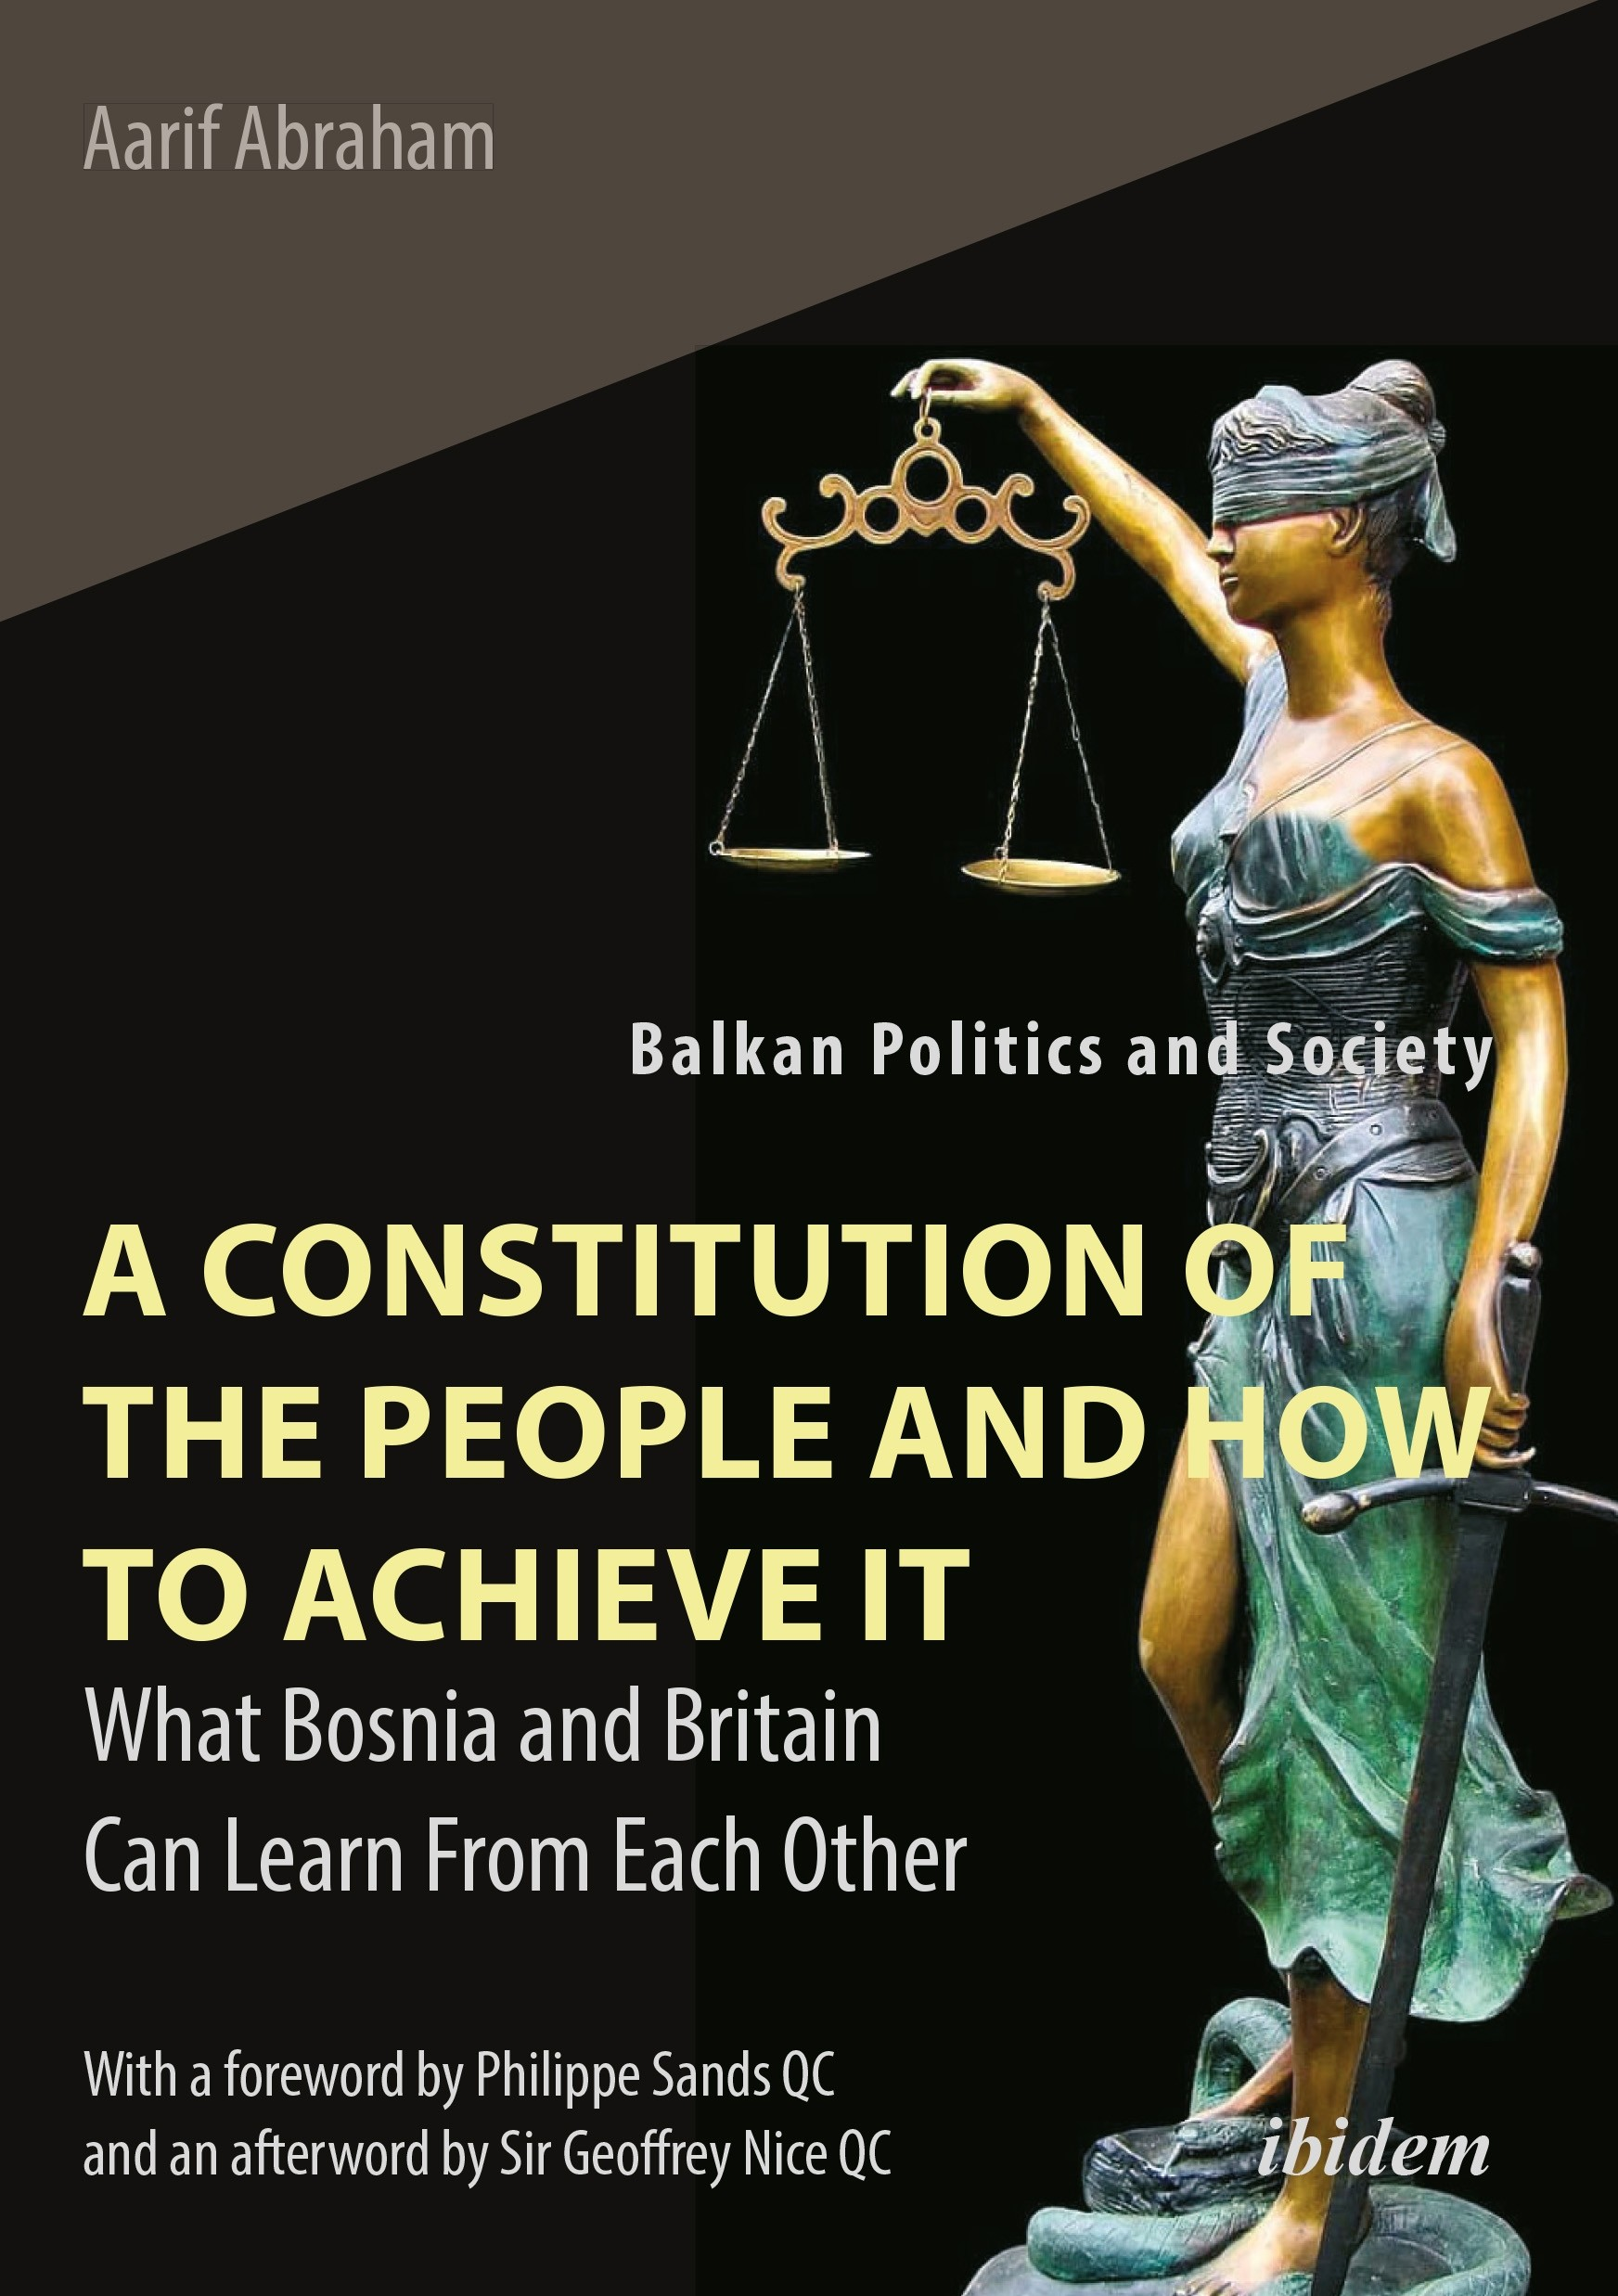 A Constitution of the People and How to Achieve It